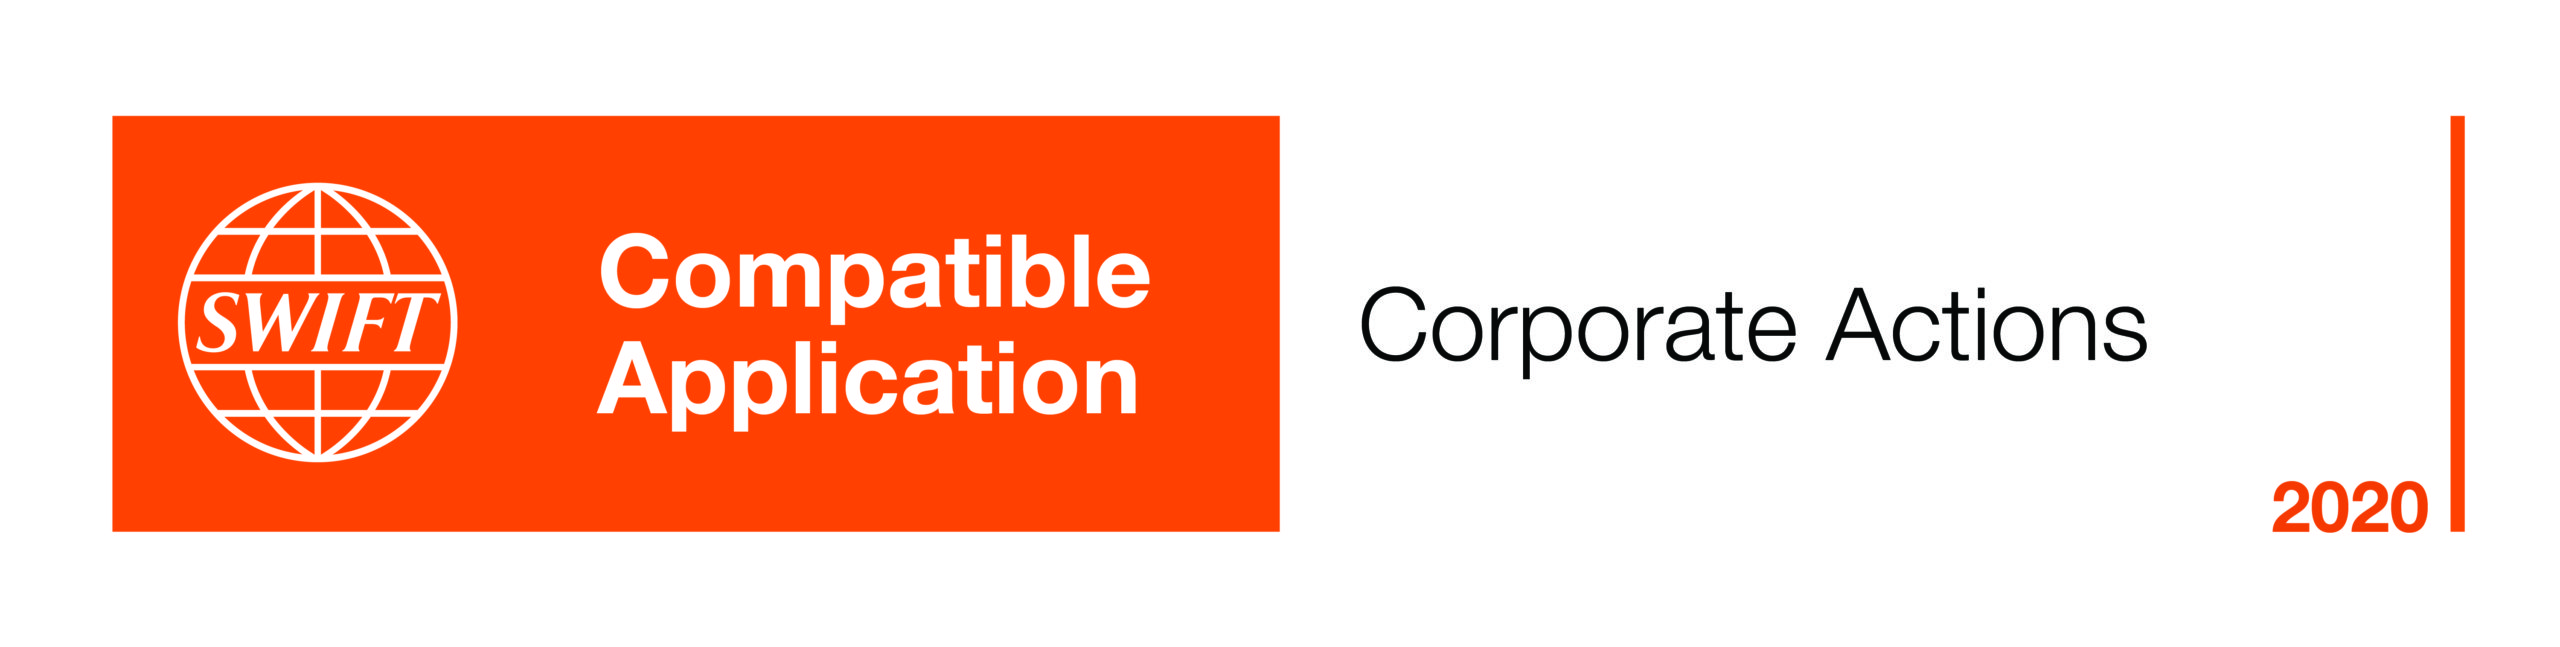 SWIFT Compatible Application Corporate Actions 2020